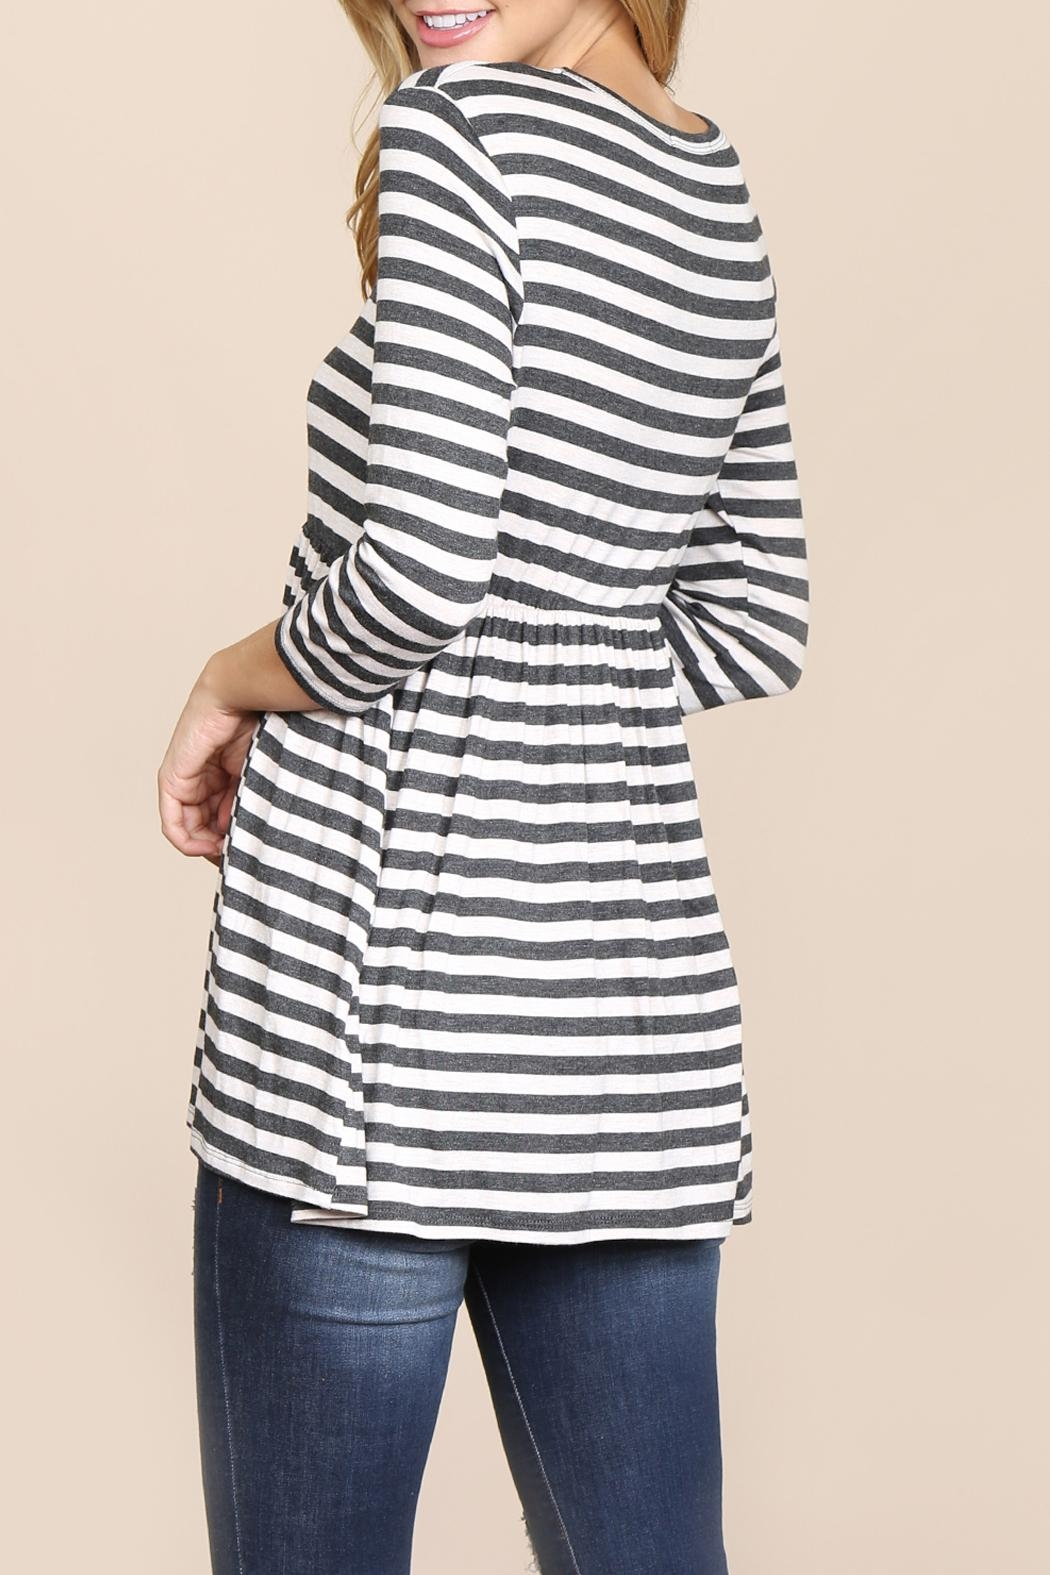 Riah Fashion Quarter-Sleeve Babydoll-Striped-Tunic - Back Cropped Image